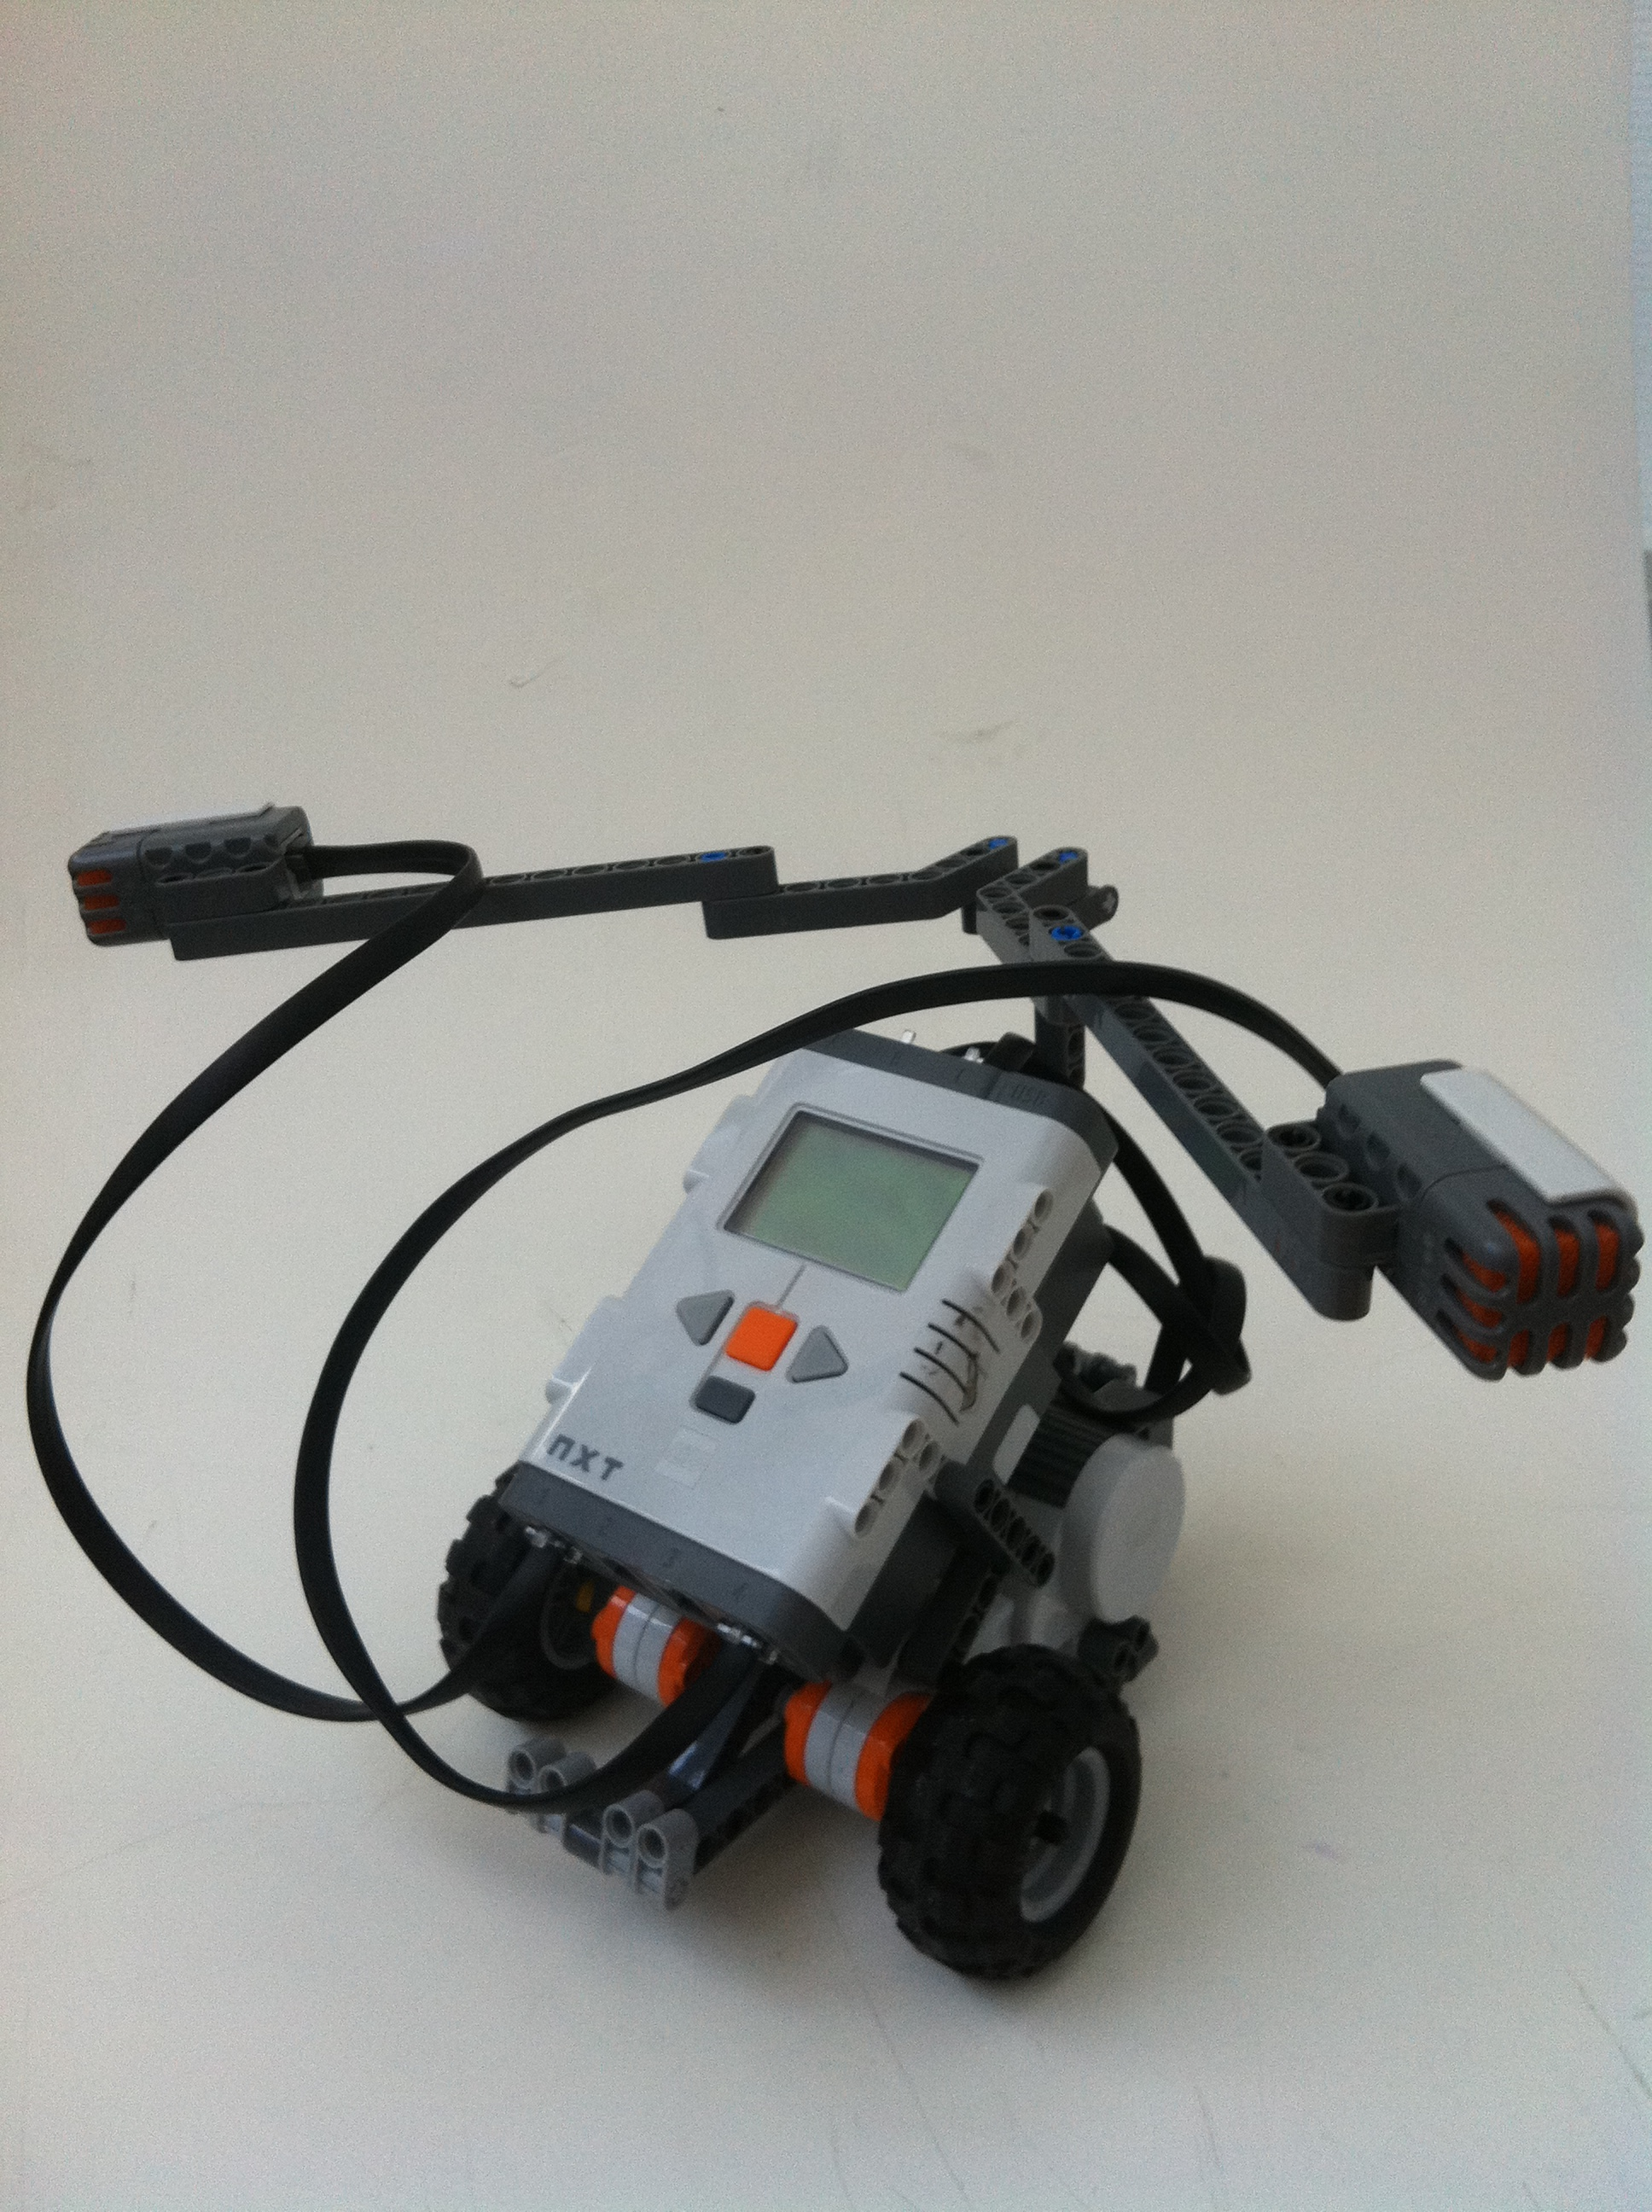 an introduction to braitenberg vehicles In this section, we will build a braitenberg vehicle like last week but use an arduino as the brains of the vehicle instead of the sensor driving the actuator directly first, assemble the provided robot chassis using the included instructions.